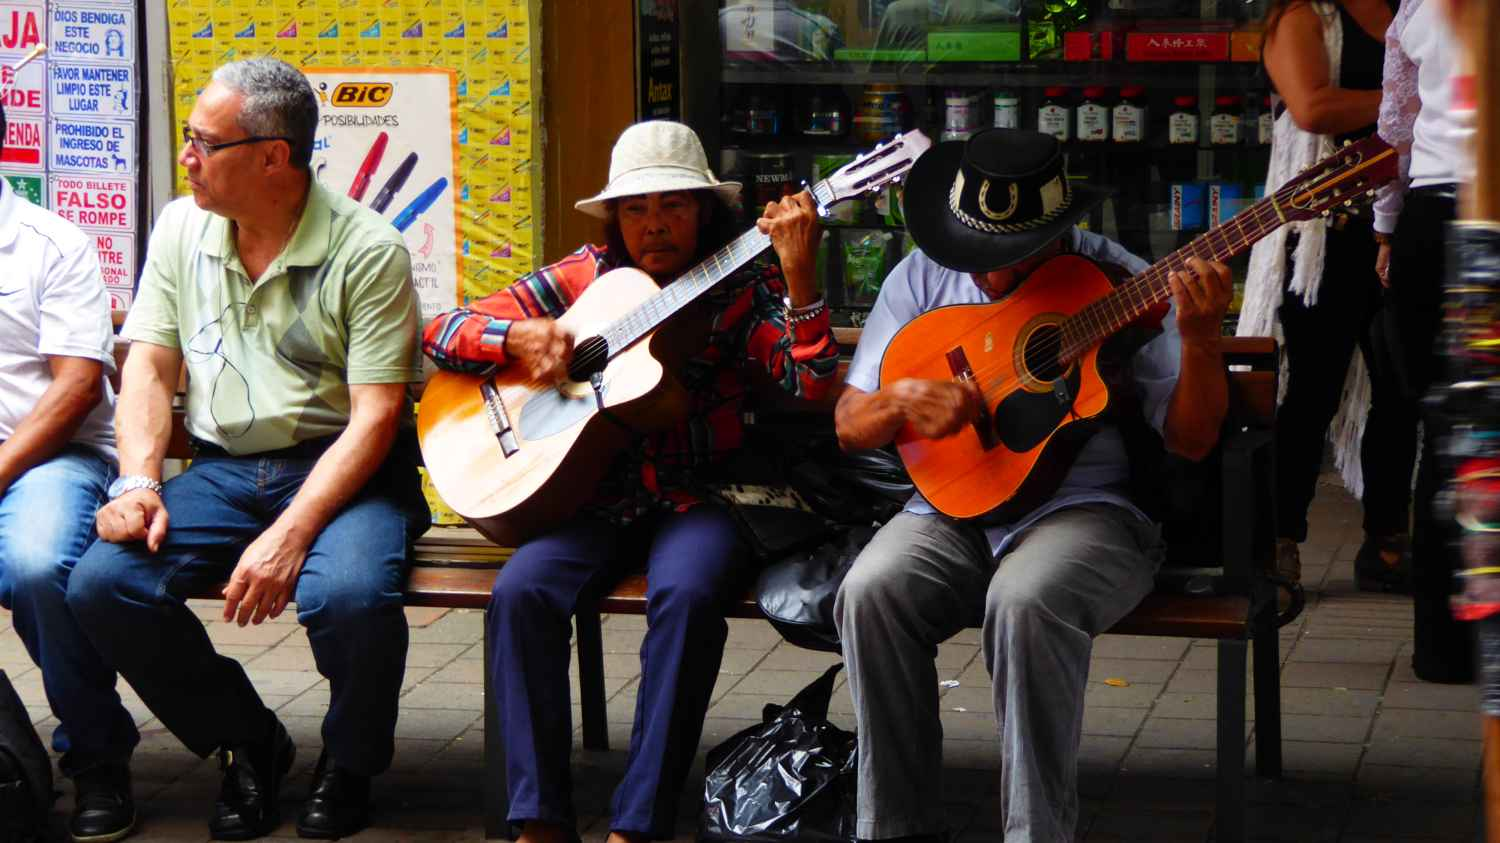 Musicians on the street in Medellin